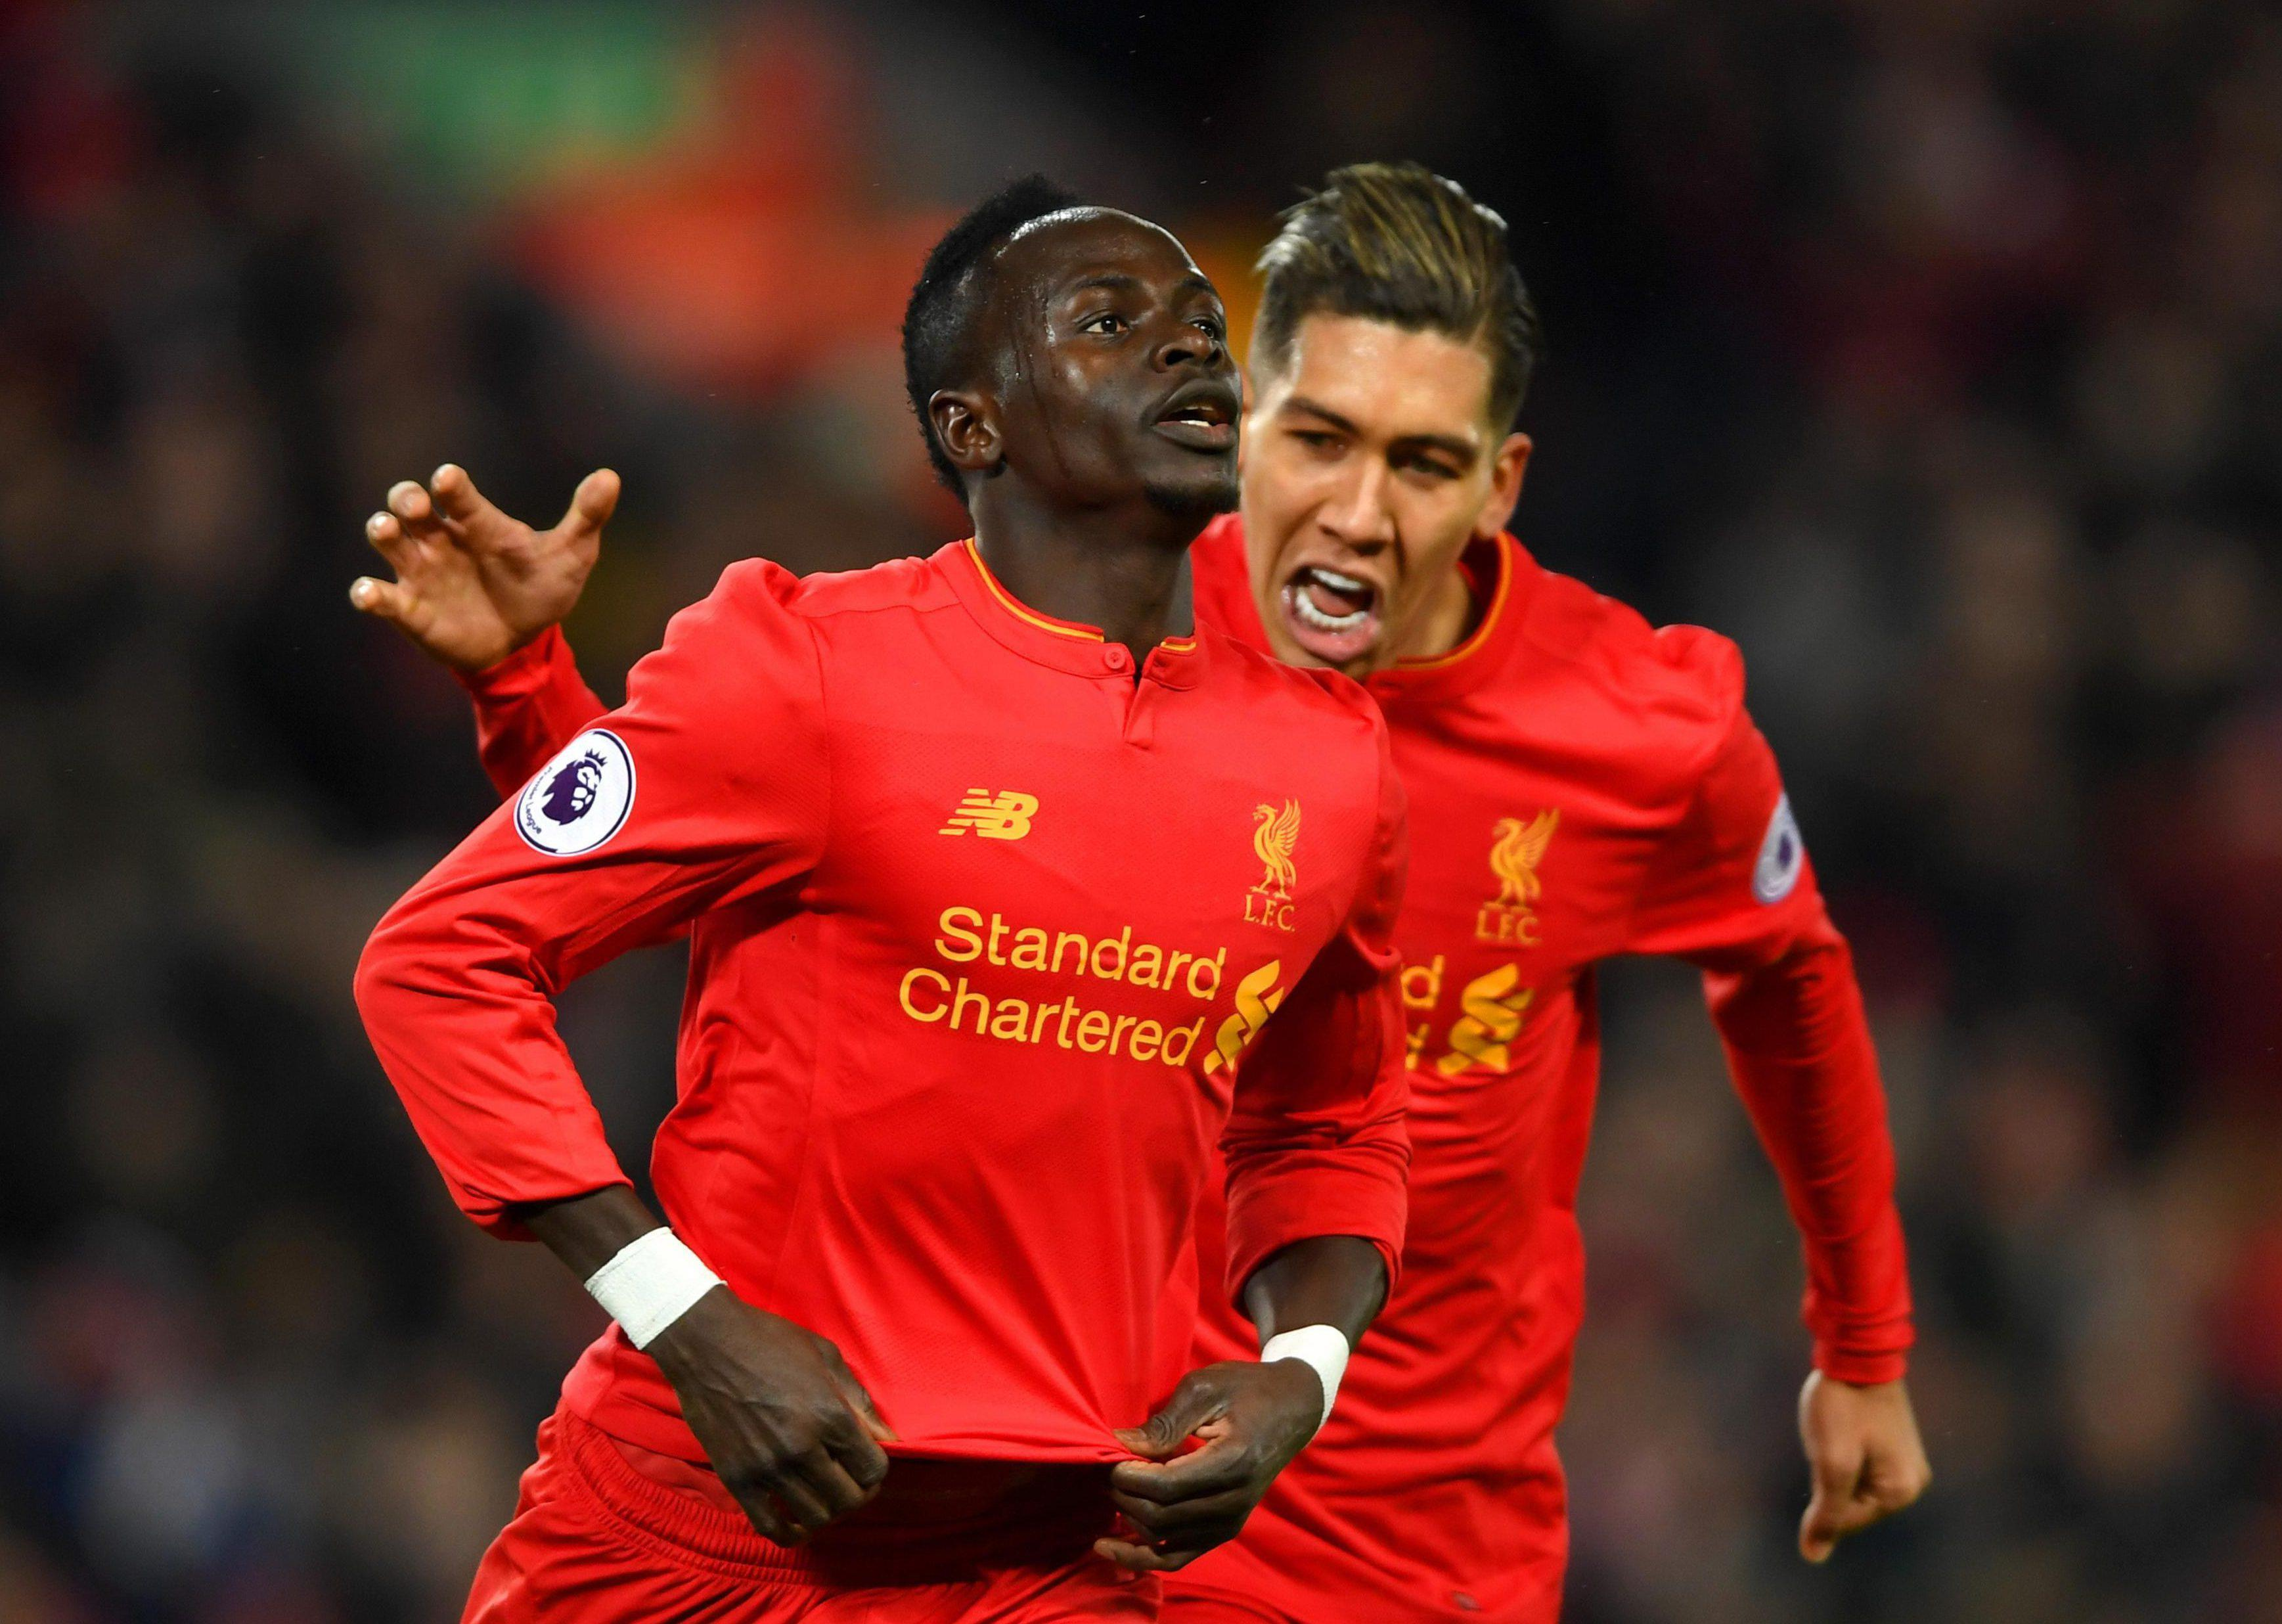 Sadio Mane and Roberto Firmino are part of one of the best front three in the league at Liverpool